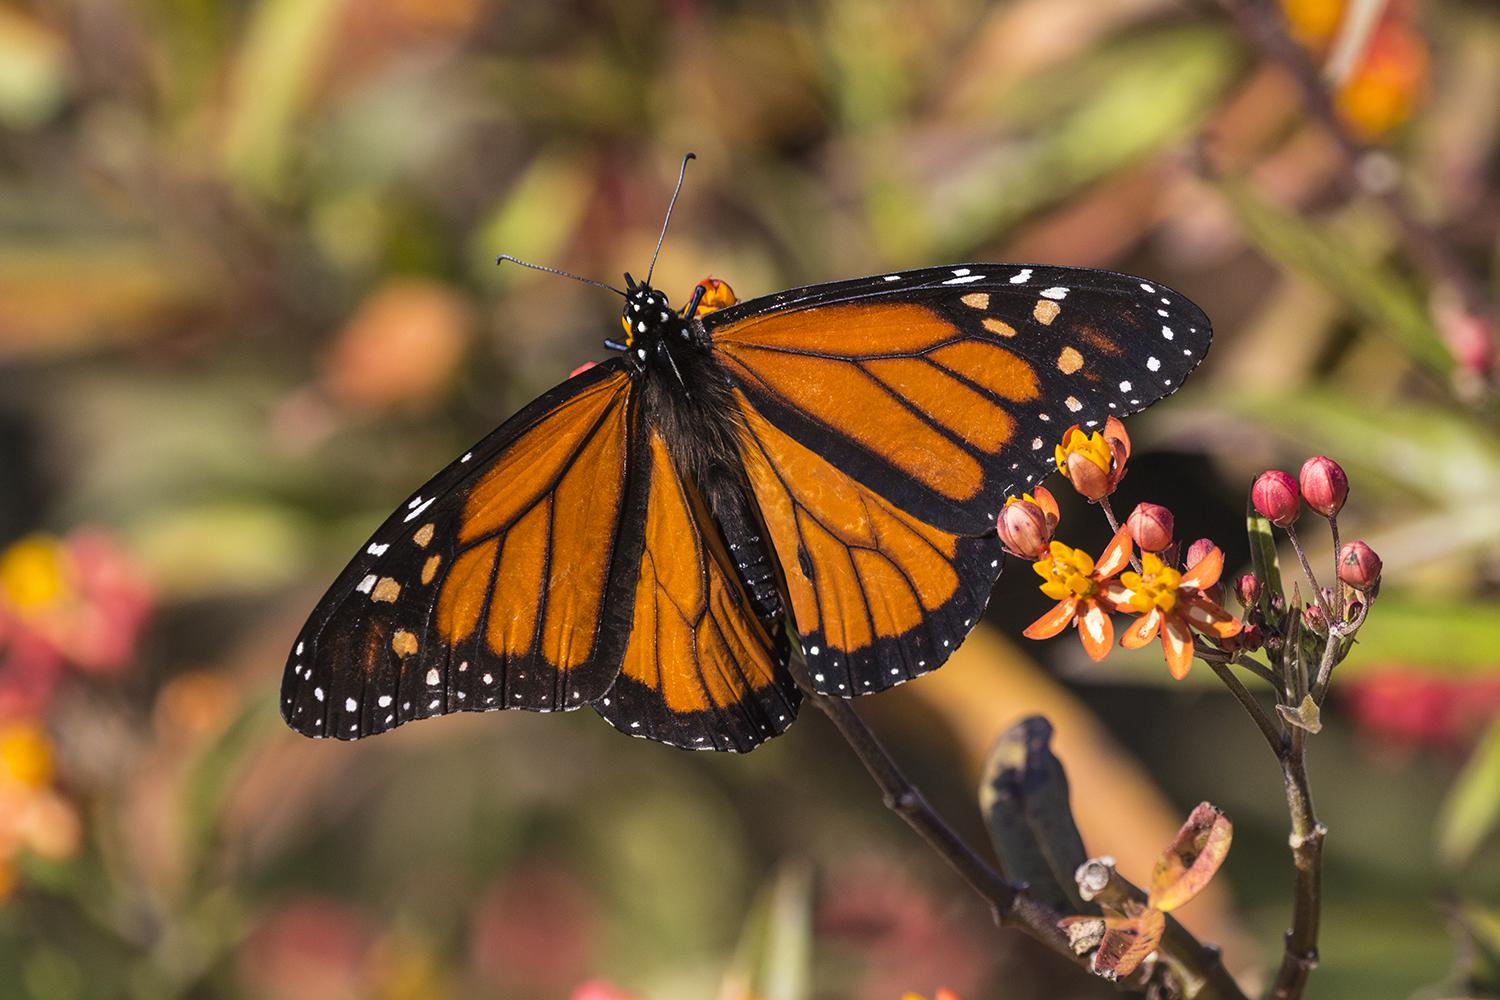 Monarch butterfly migration is coming to Texas - HoustonChronicle.com